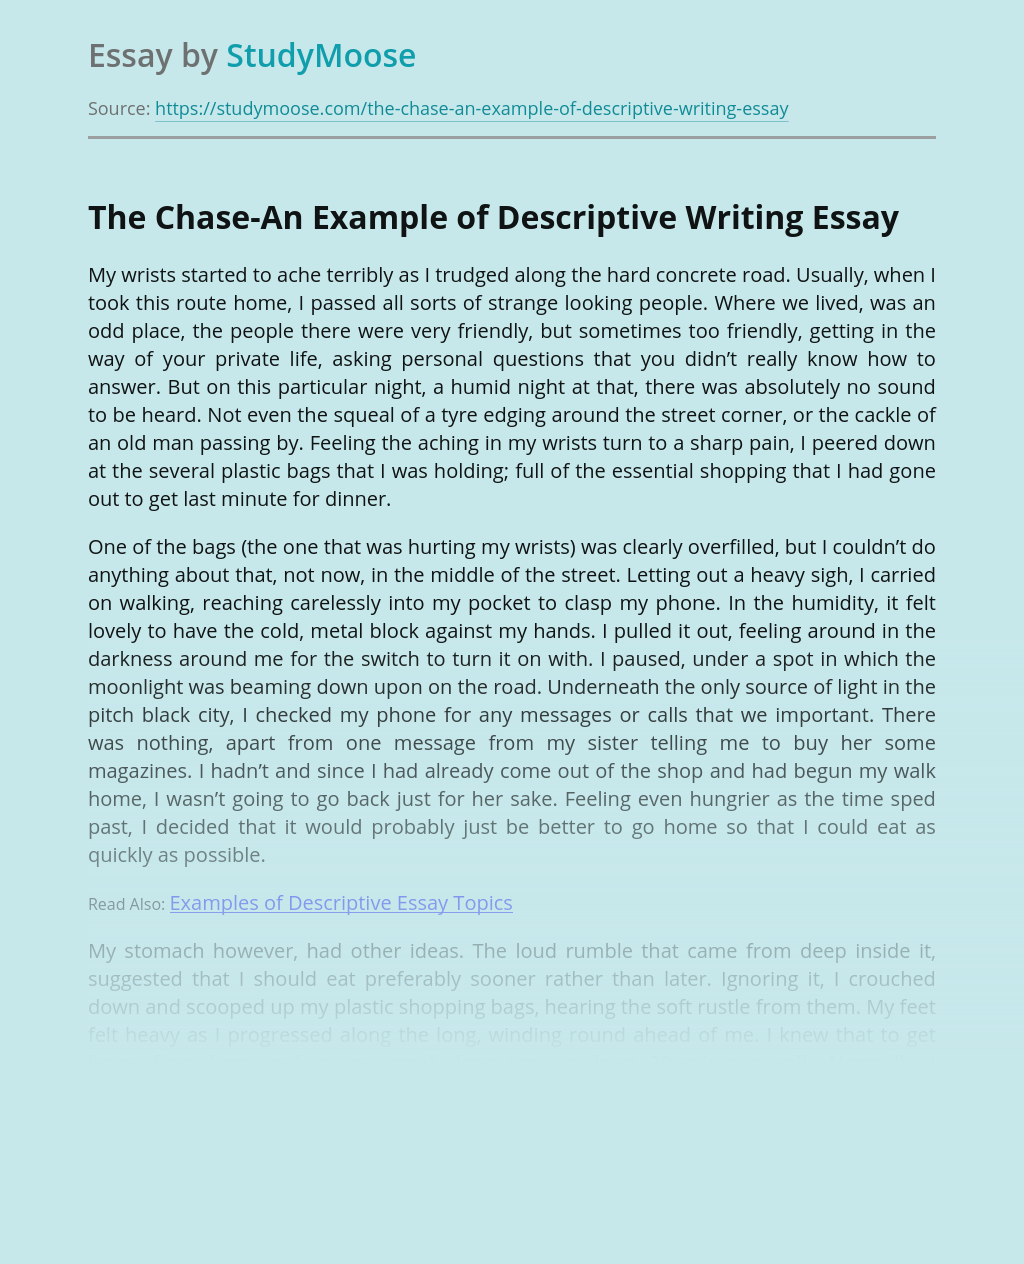 The Chase-An Example of Descriptive Writing